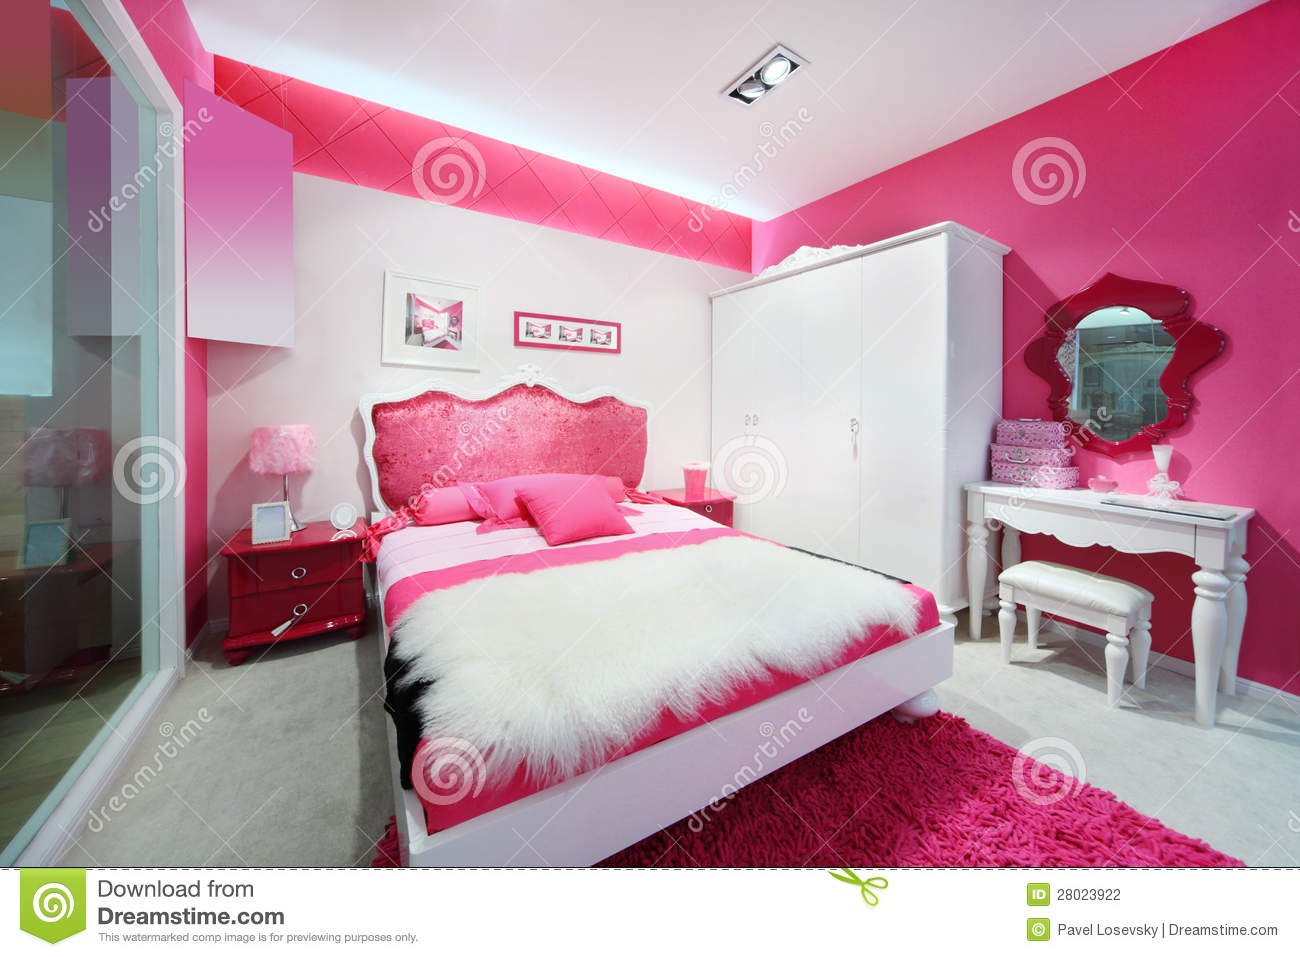 belle chambre coucher rose blanche l gante. Black Bedroom Furniture Sets. Home Design Ideas